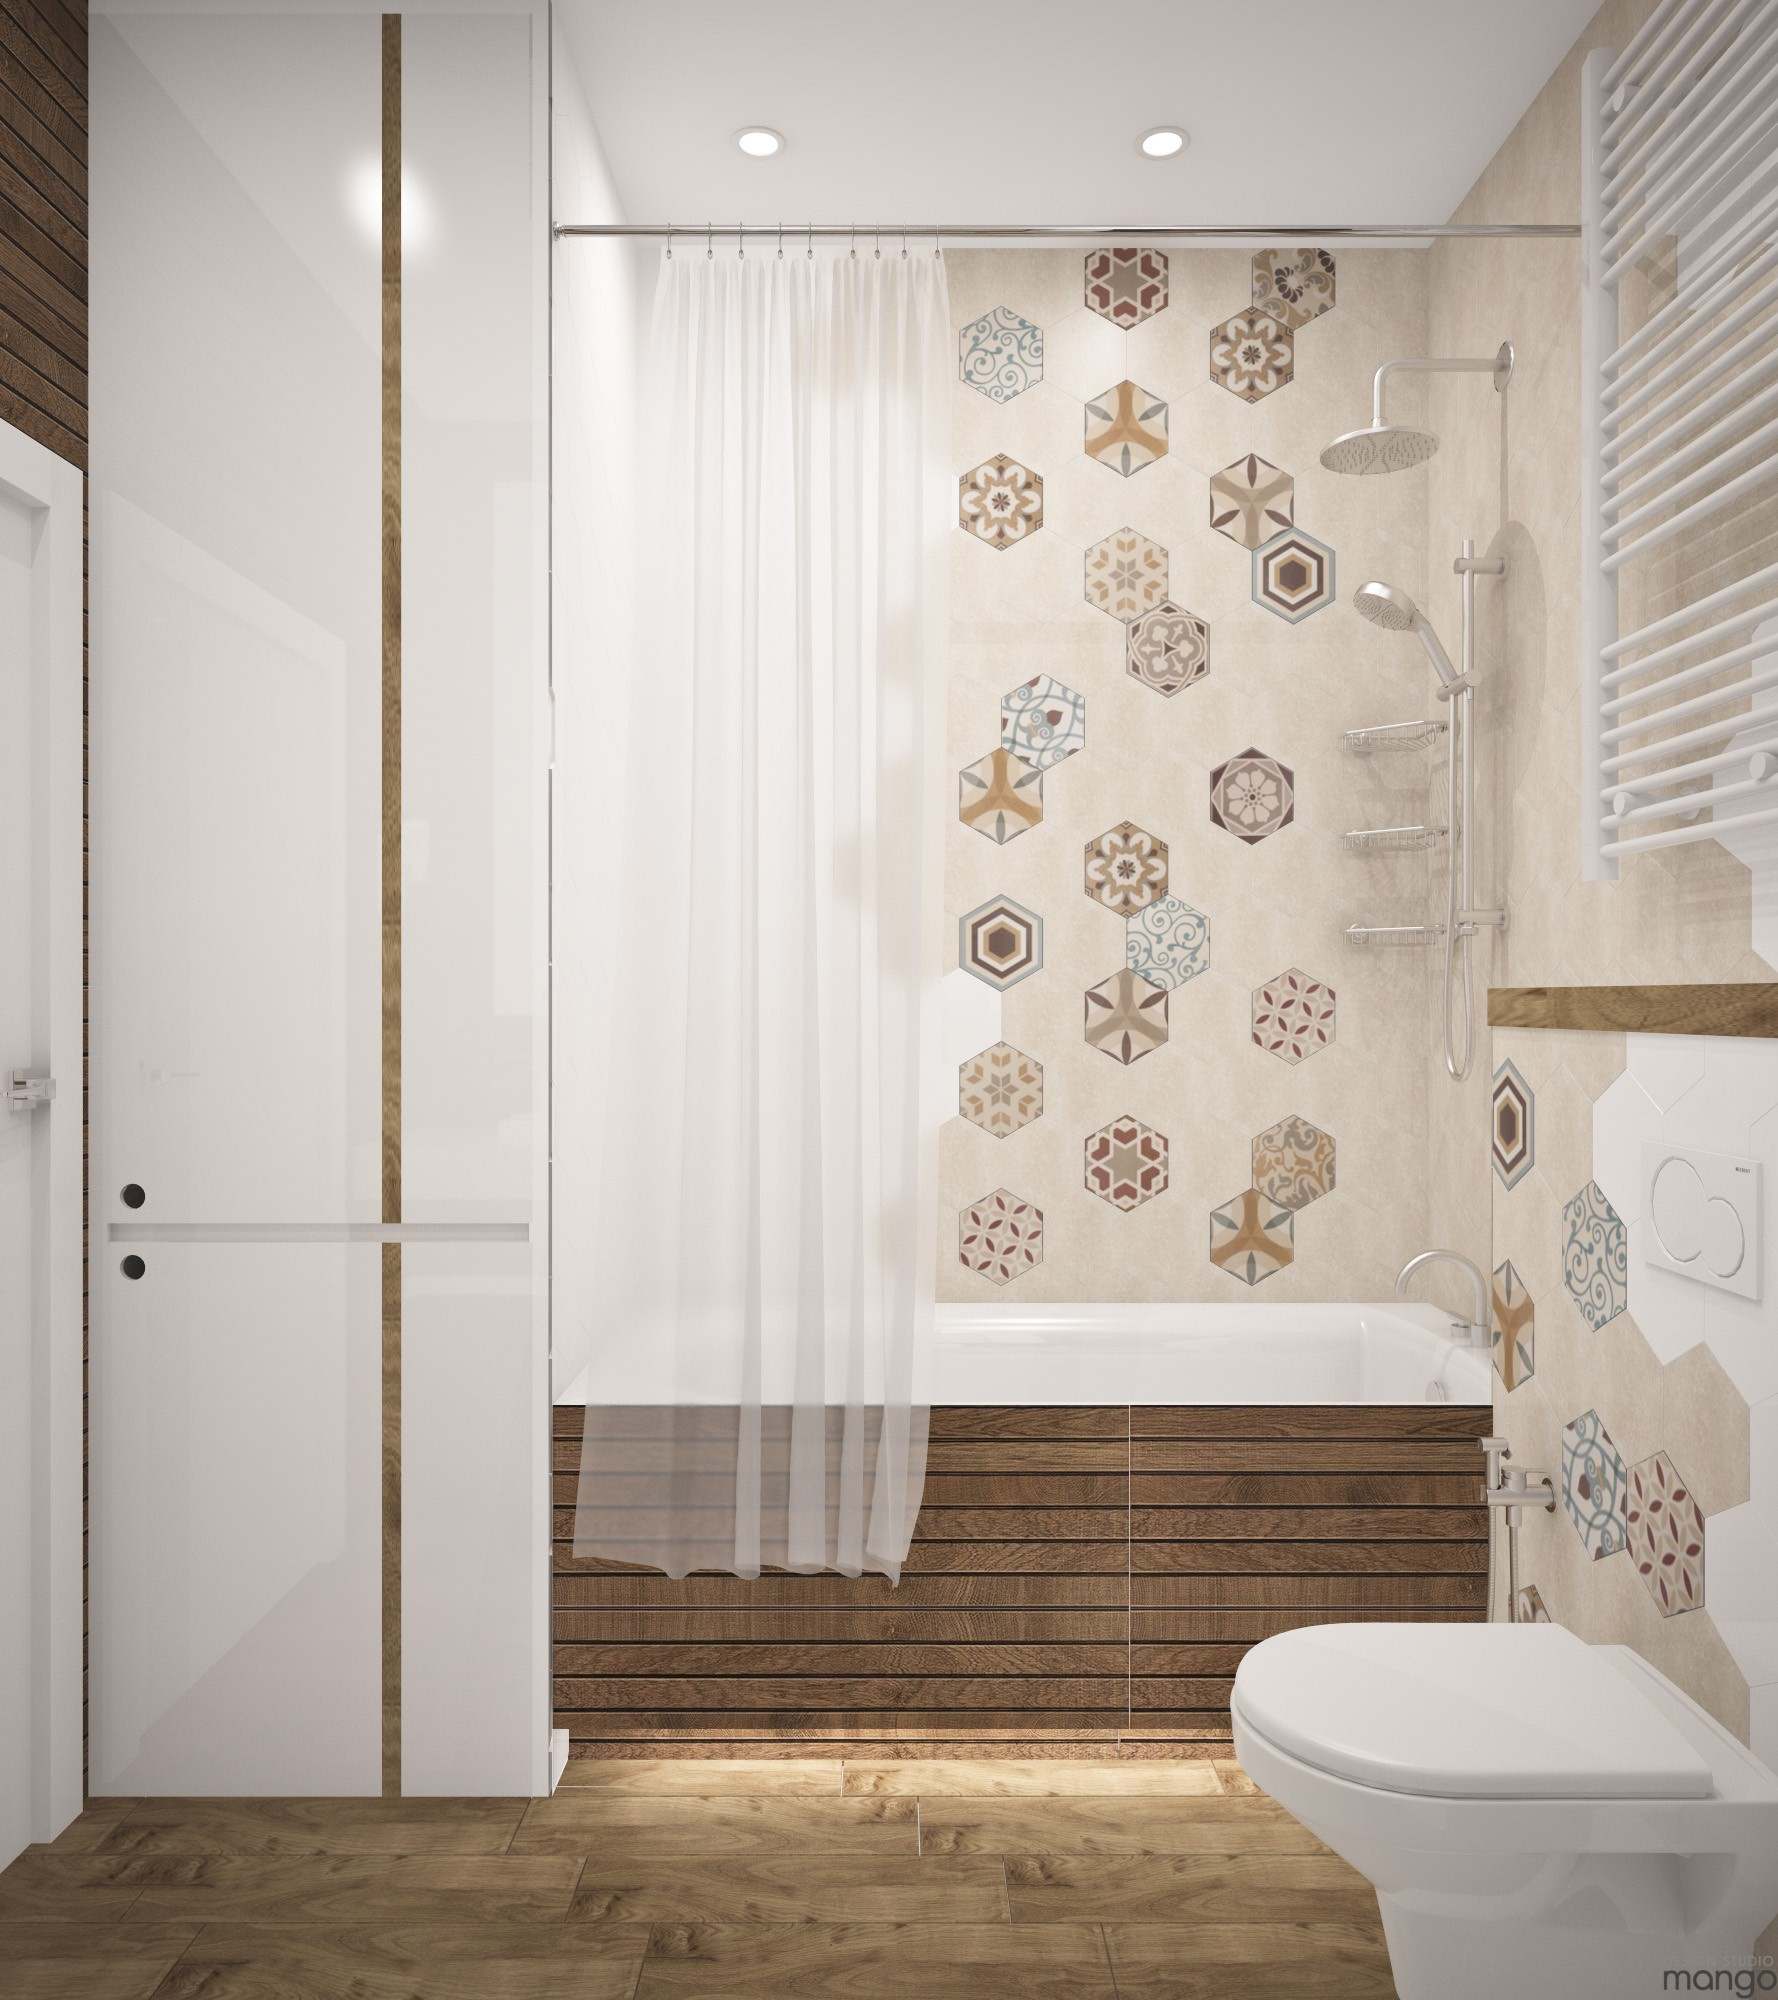 Simple Bathroom Decorating Ideas: A Suitable Simple Small Bathroom Designs Looks So Perfect And Spacious With A Smart Decor Ideas